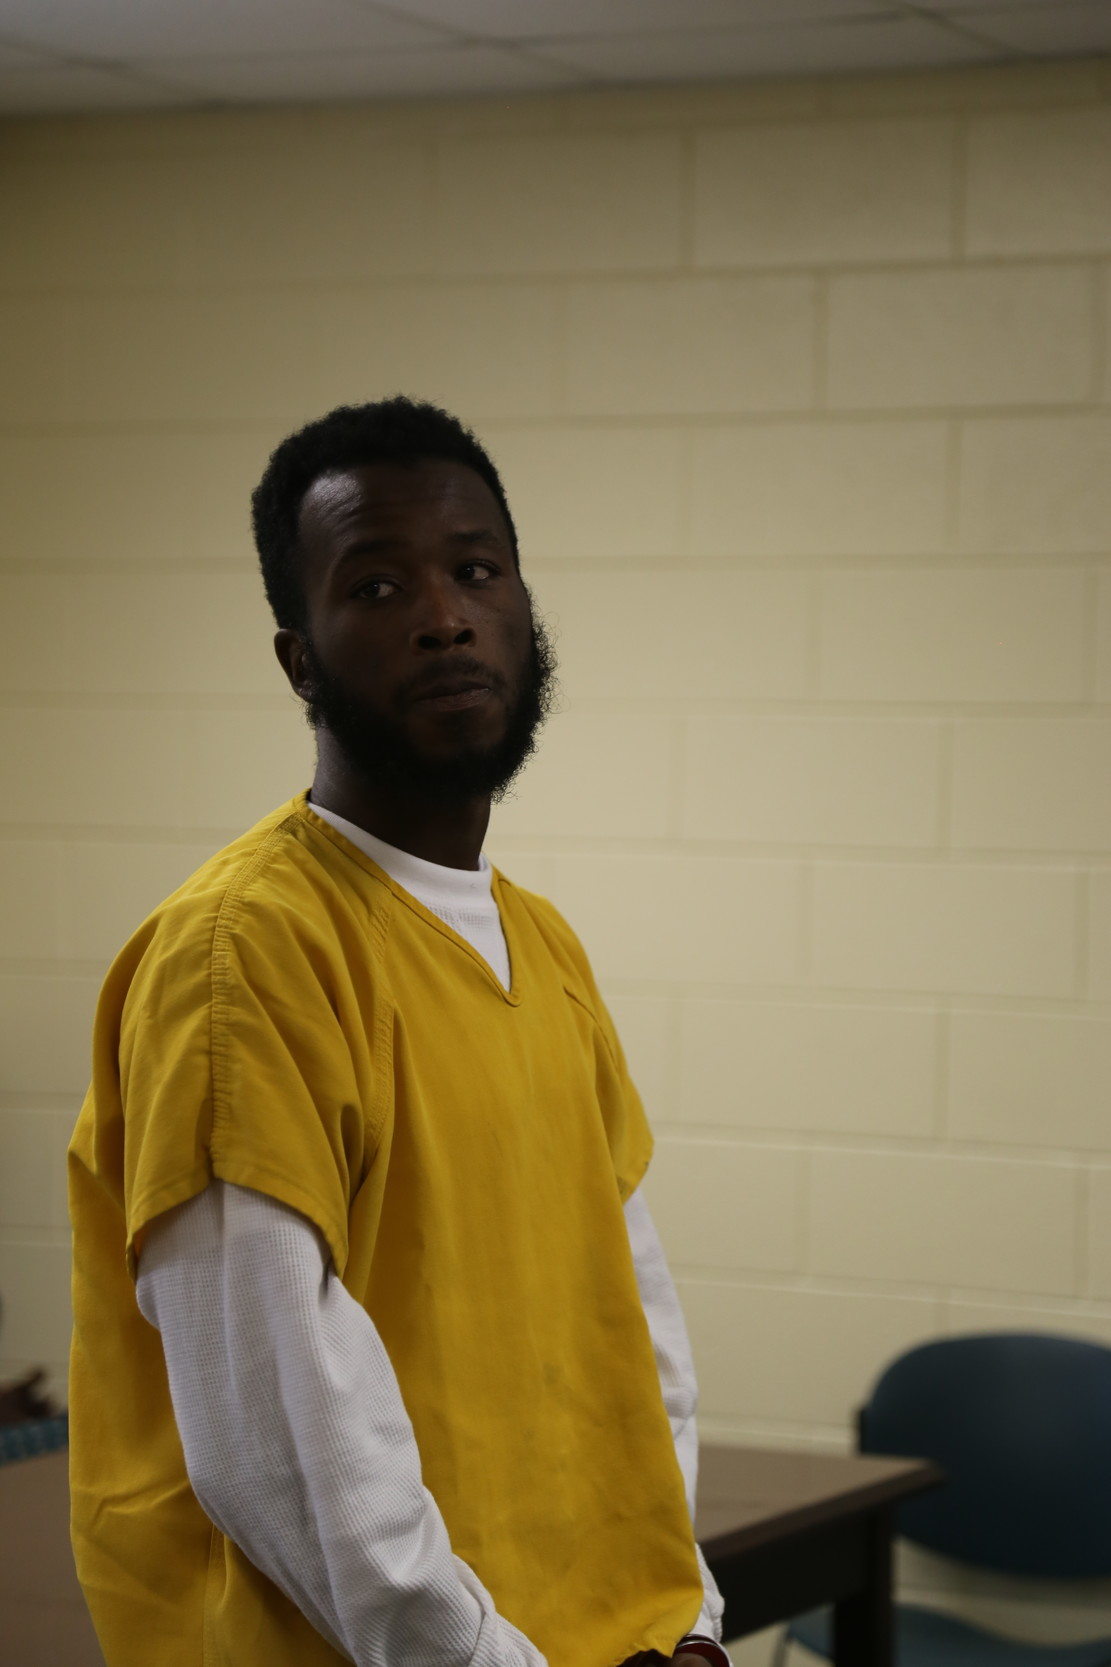 ADRIENNE SARVIS / THE SUMTER ITEMKentwon Savon Thames-Daniels stands before Magistrate Judge Larry Blanding on Tuesday.